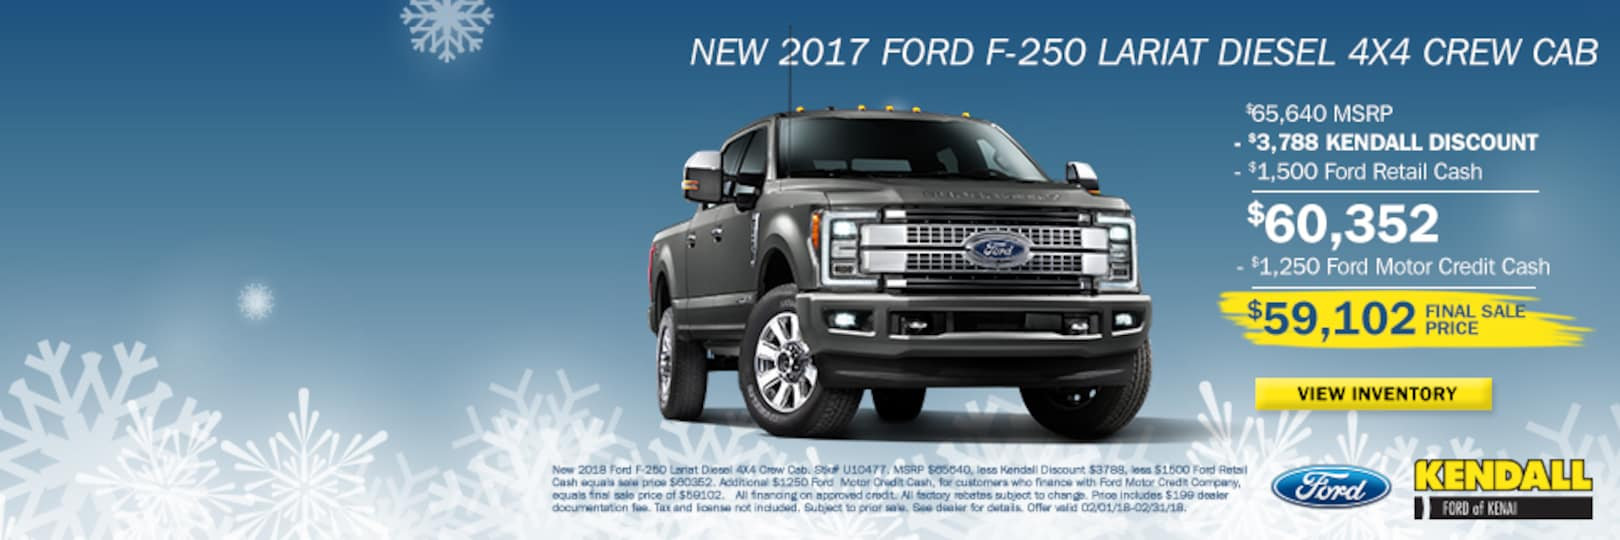 New, Certified, & Used Car, Truck, & SUV Ford Dealership   Kendall ...